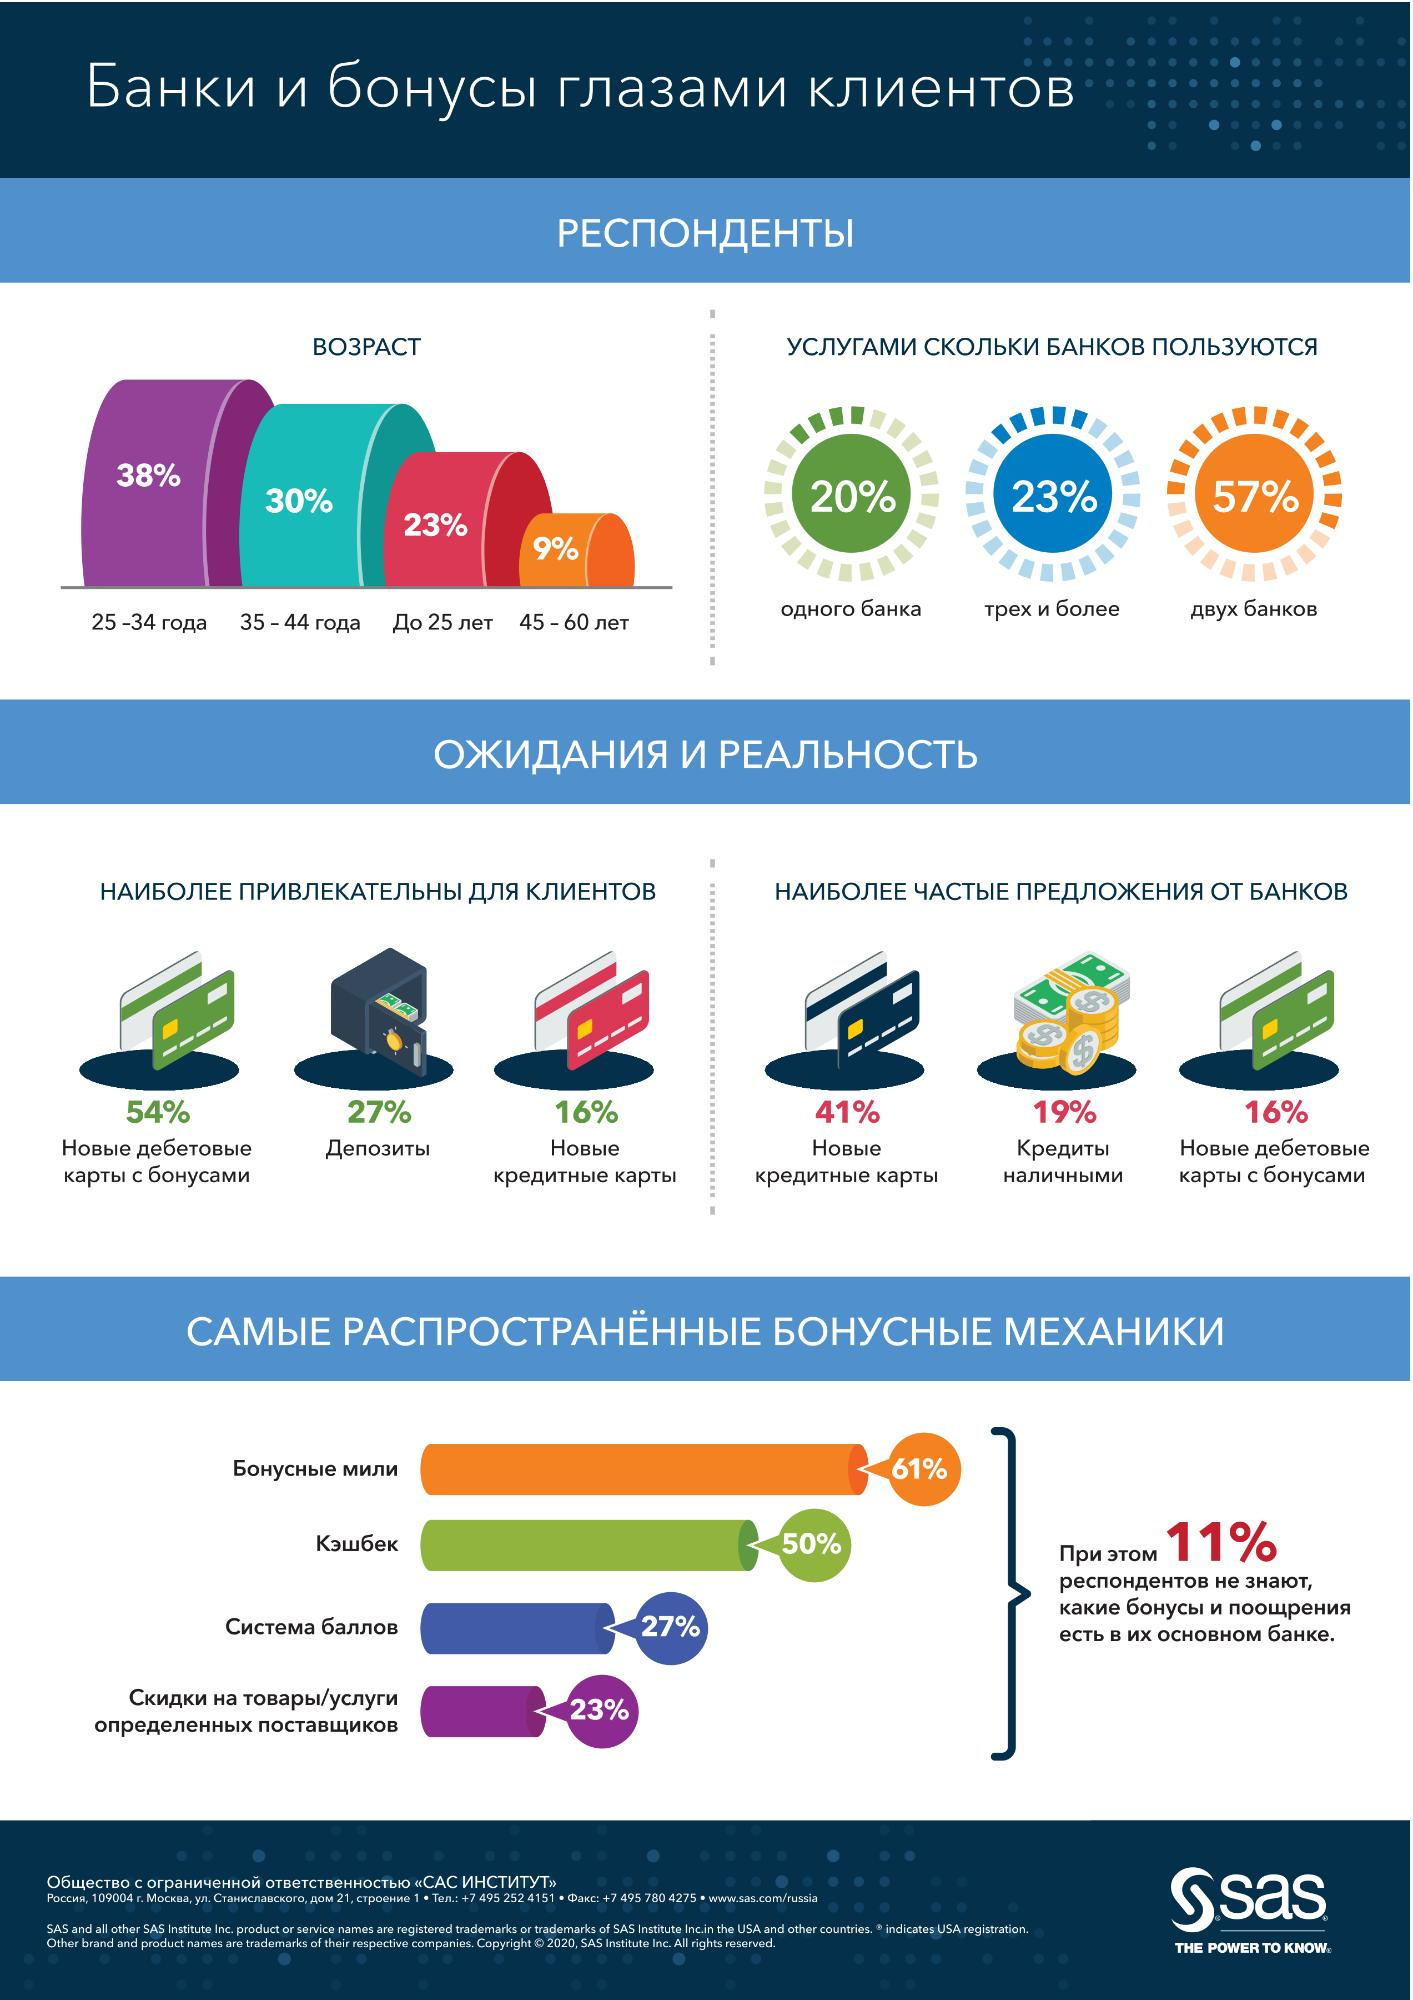 Banks and bonuses through the eyes of customers - Russian